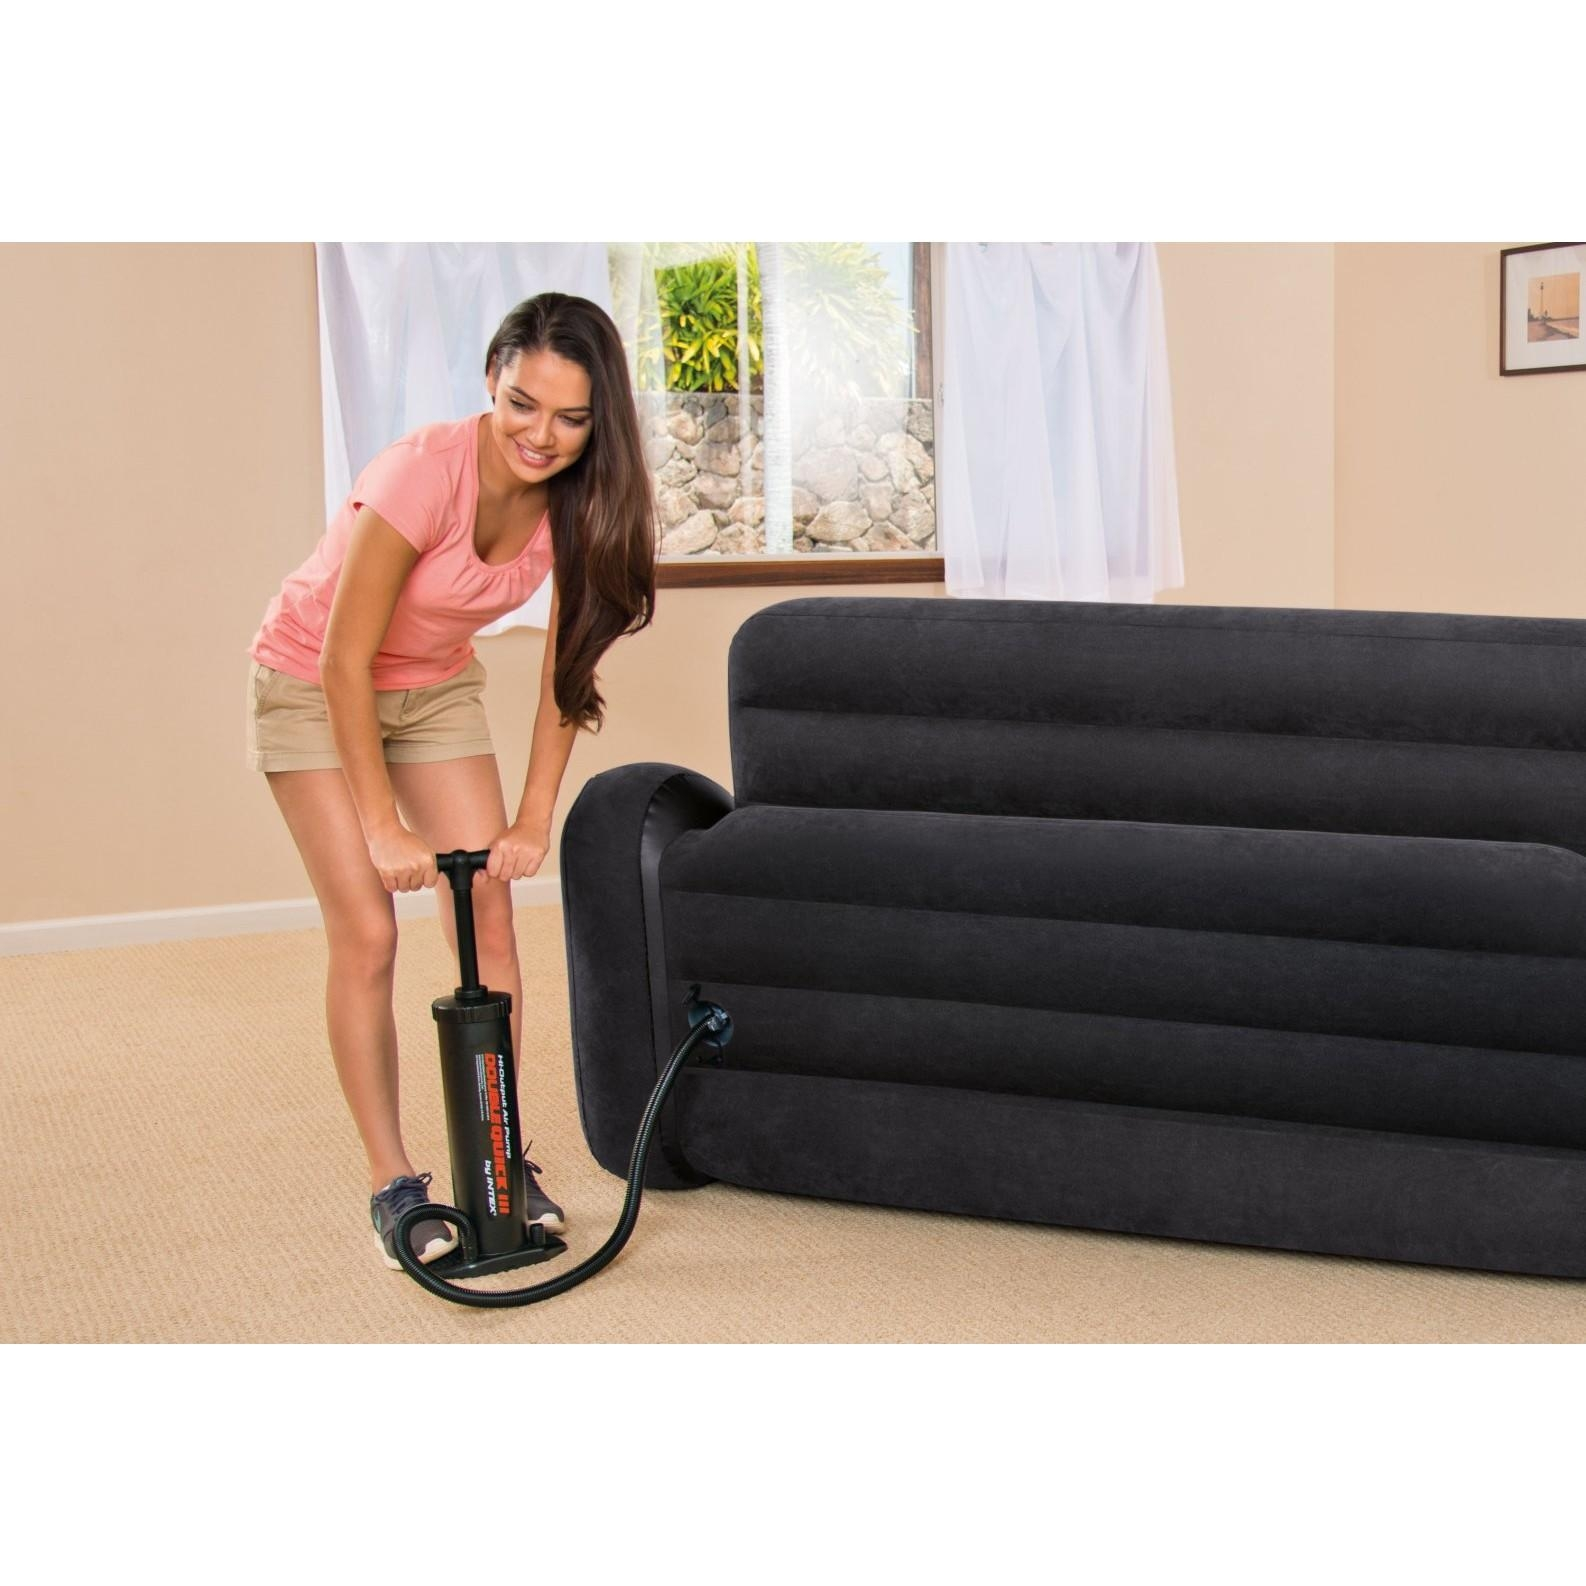 Intex Pull Out Sofa Inflatable Bed, Queen Throughout Inflatable Pull Out Sofas (Image 12 of 20)